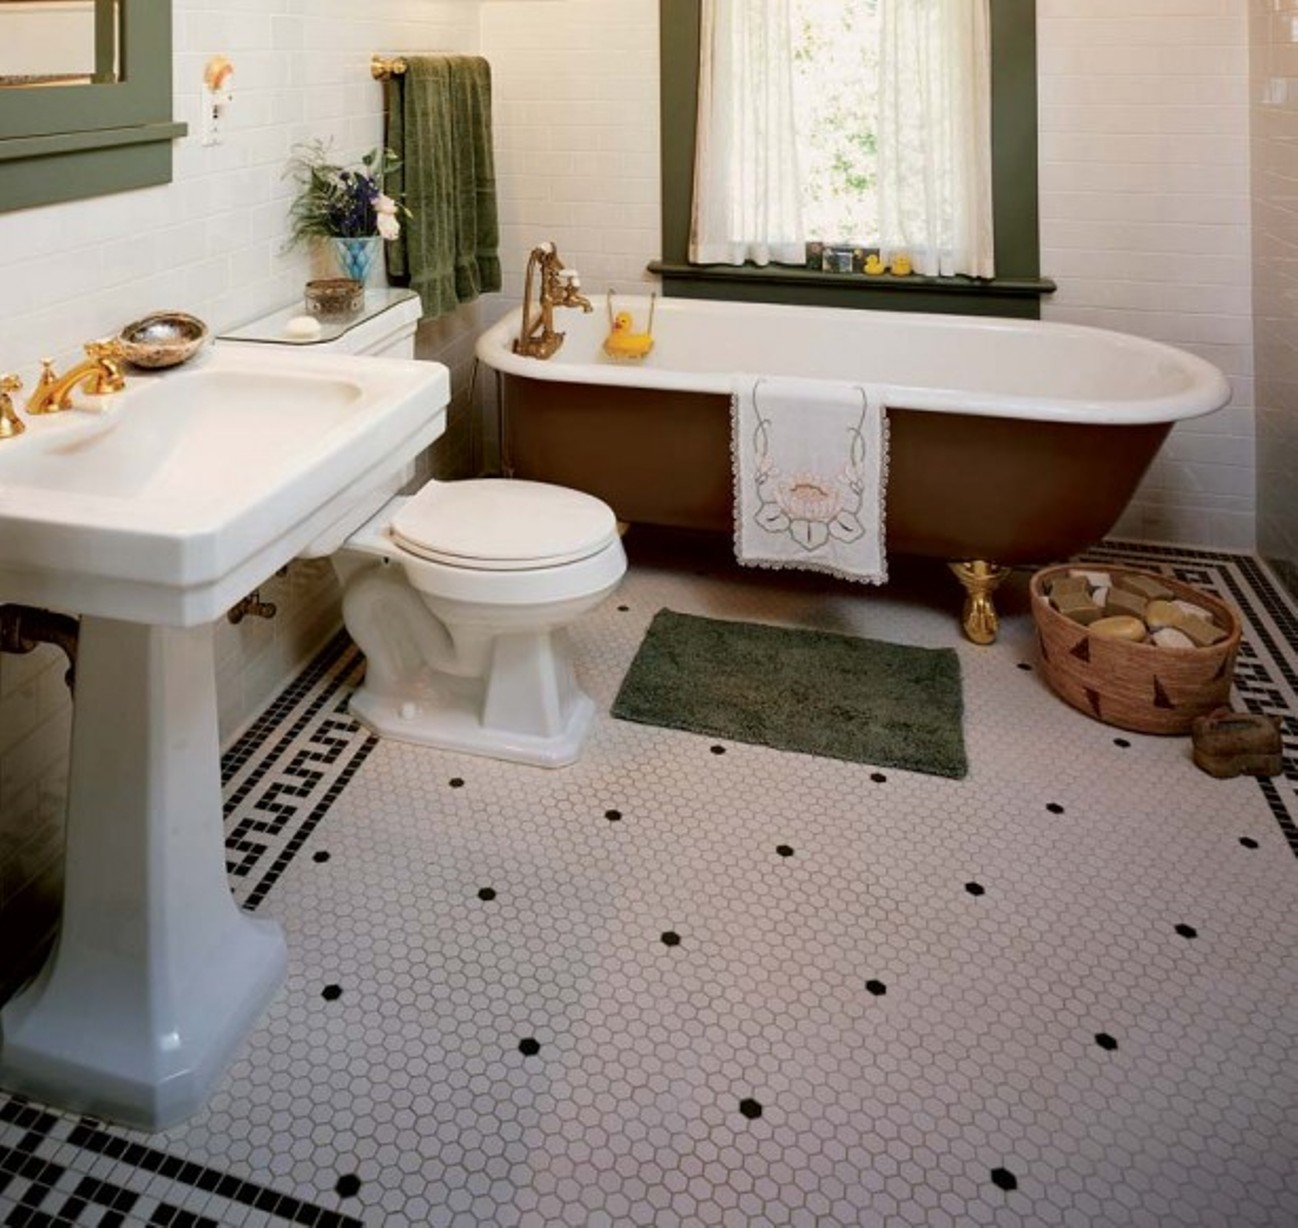 bathroom-flooring-ideas-hexagonal-tiles-flooring-with-details